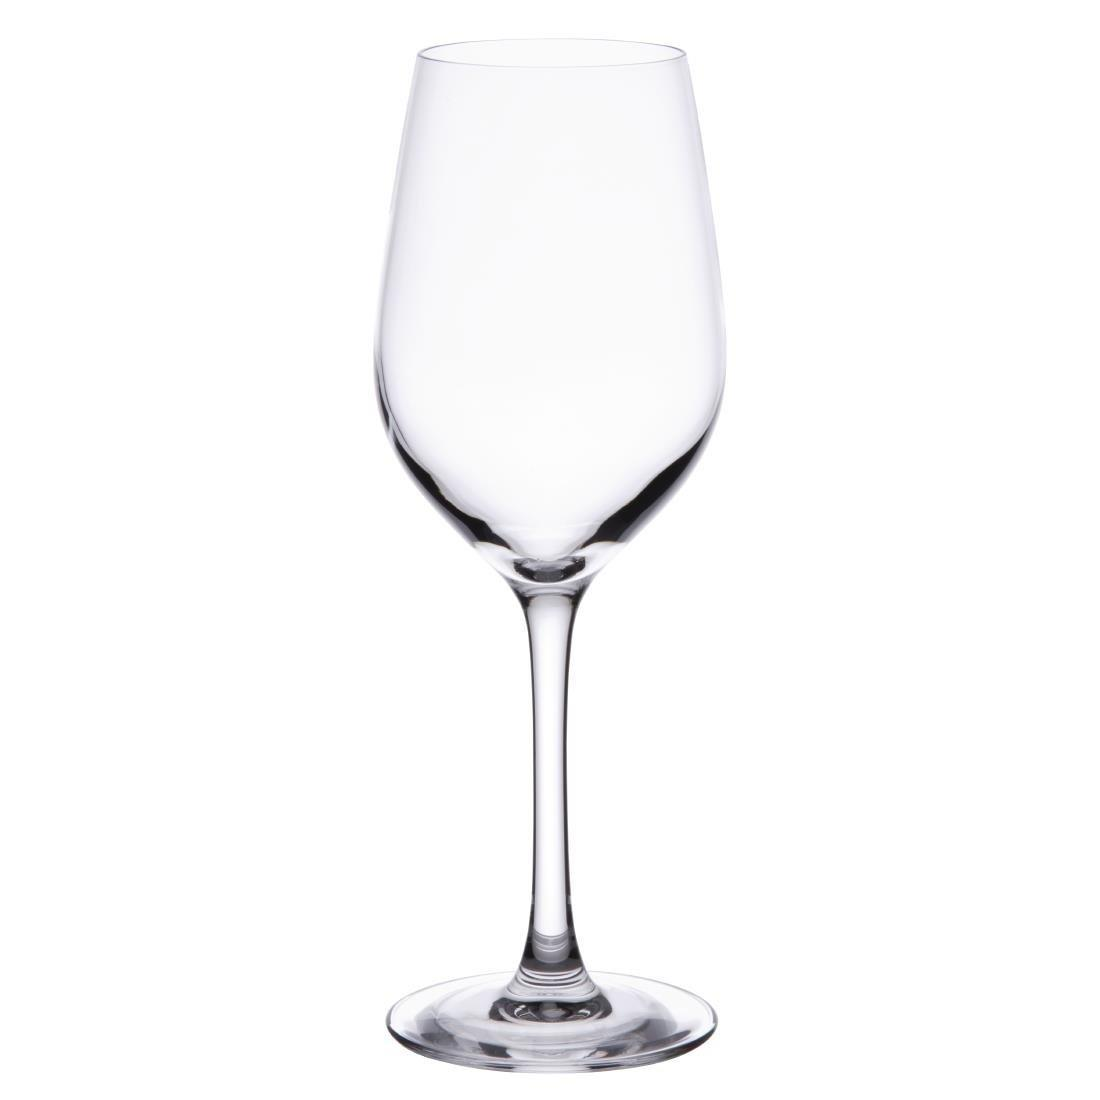 Arc Mineral Wine Glass Kwarx - 350ml 12.5oz (Box 24) - GD965